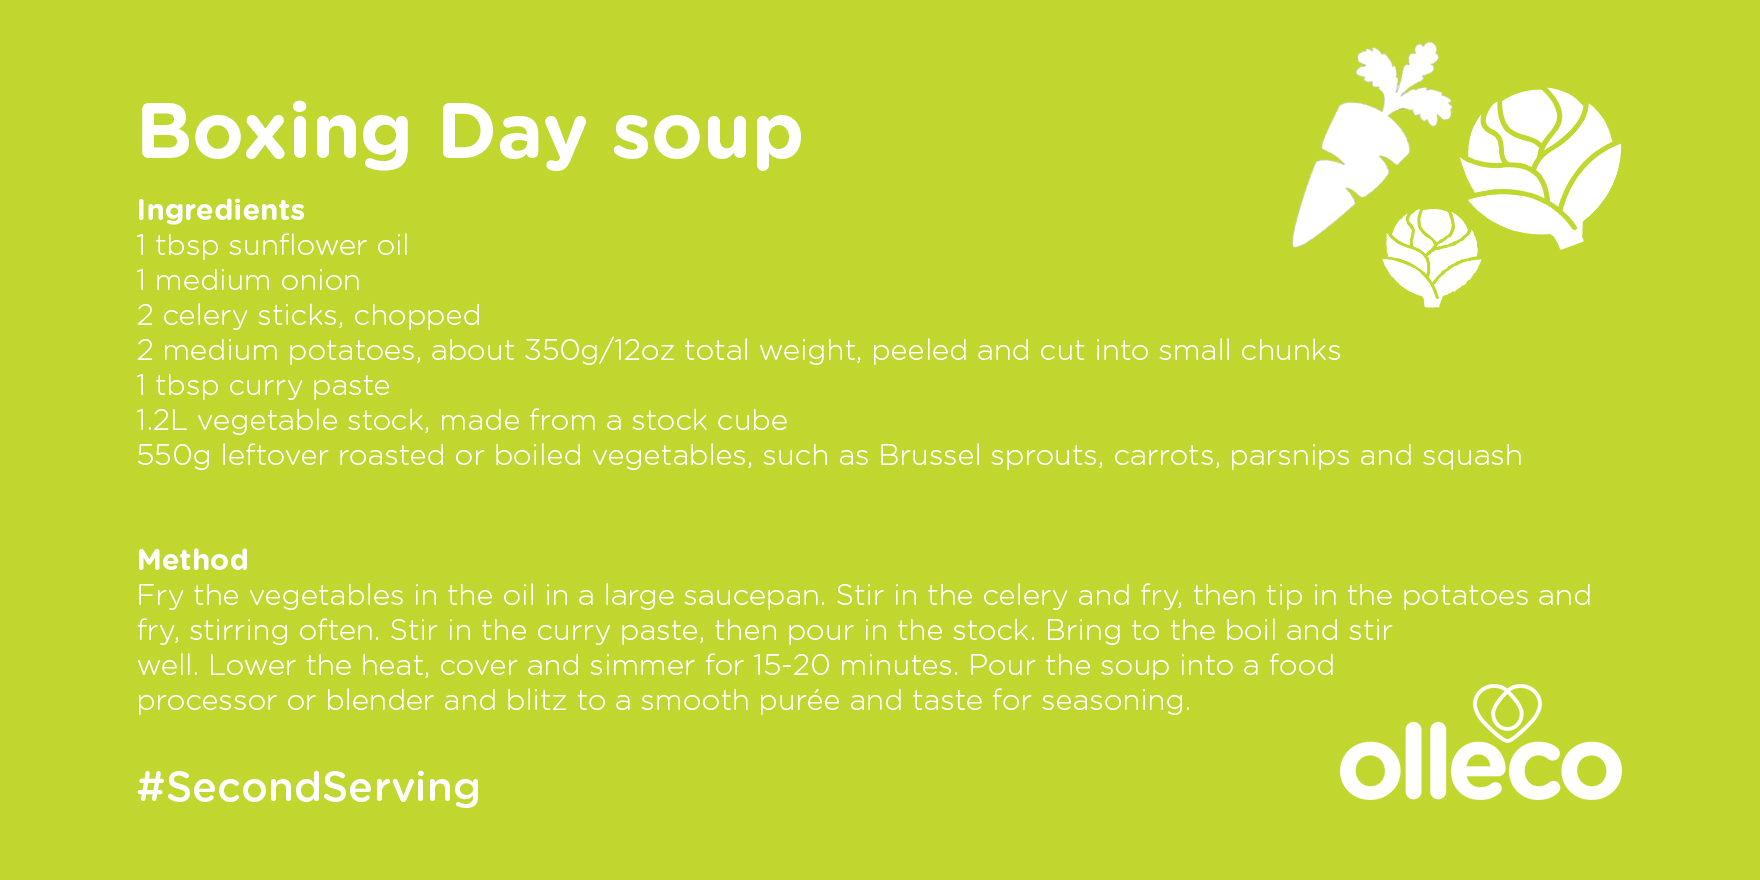 Boxing Day soup recipe